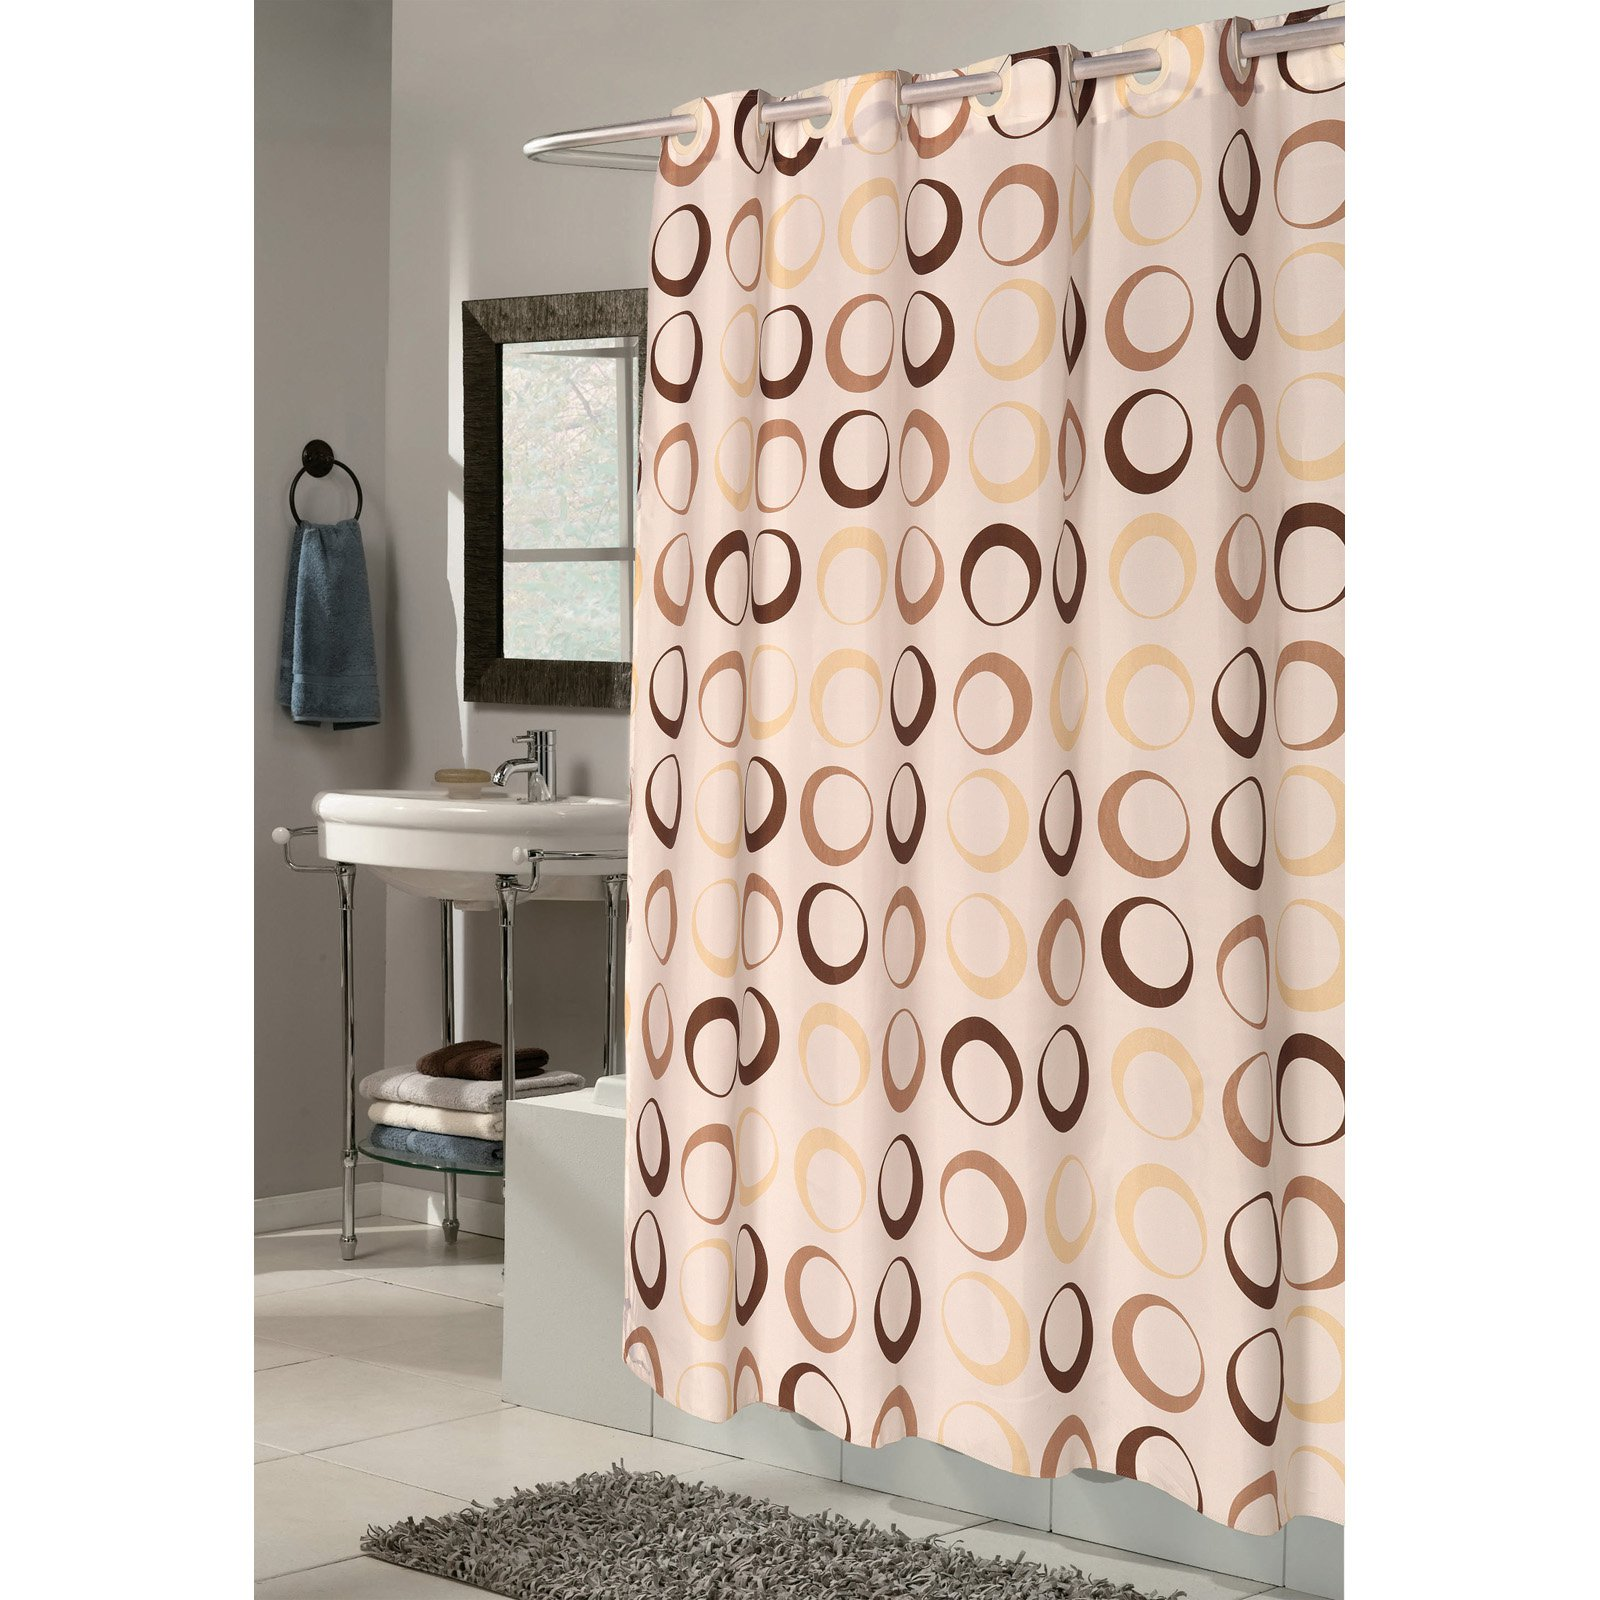 Carnation Home Fashions Ez On Grommet Circles Beige Fabric Shower Curtain